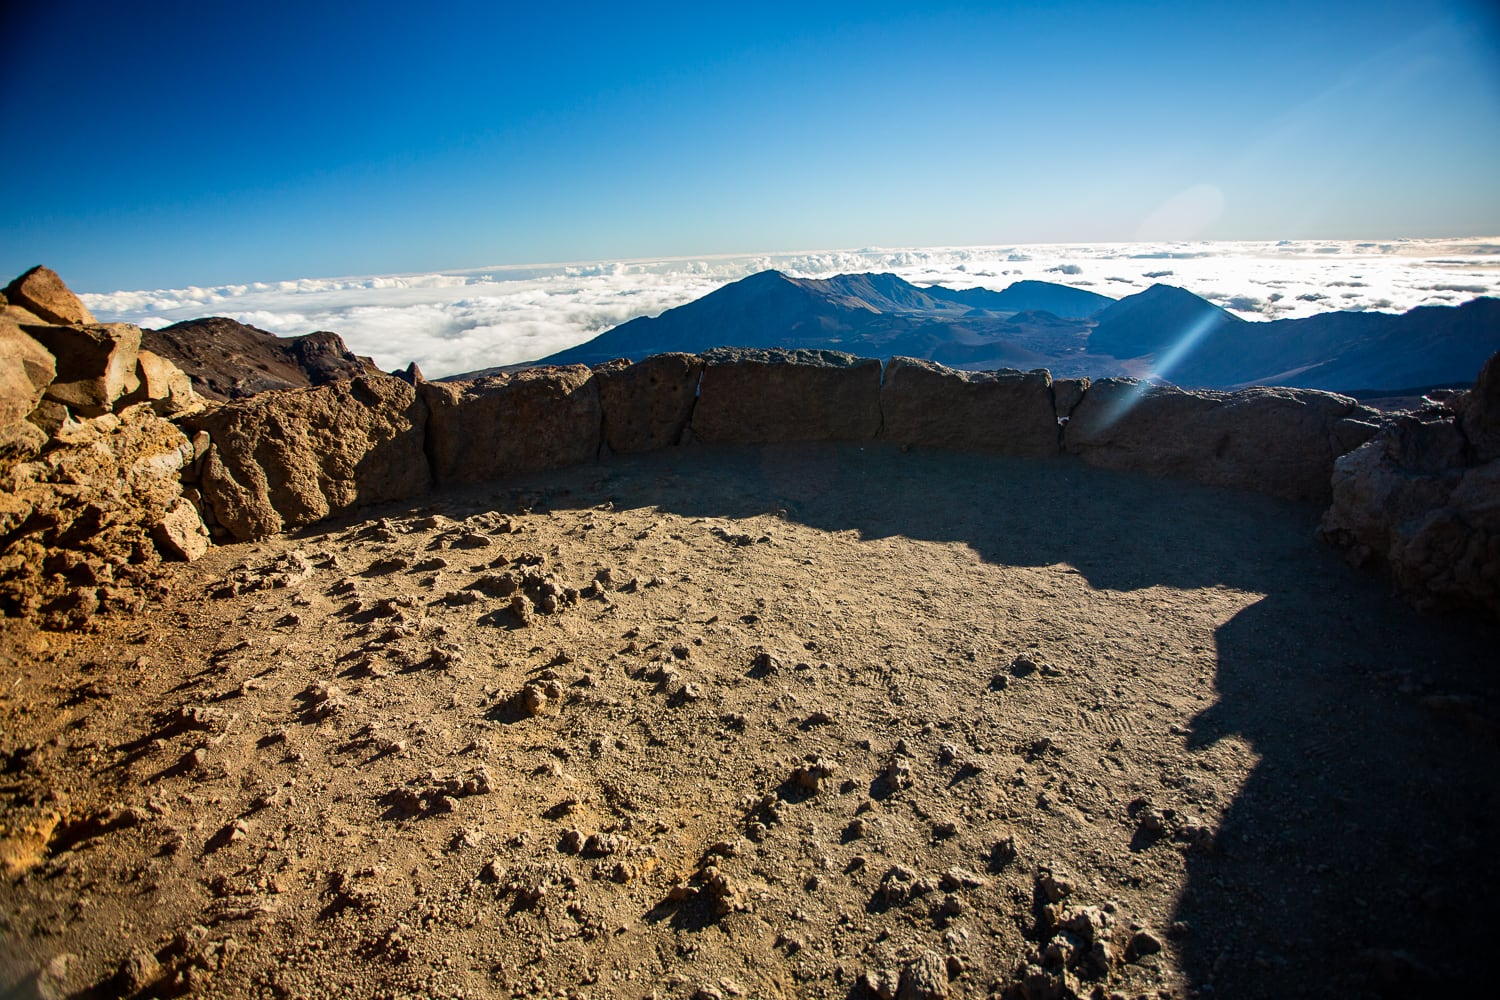 The white hill overlook at Haleakala's summit district